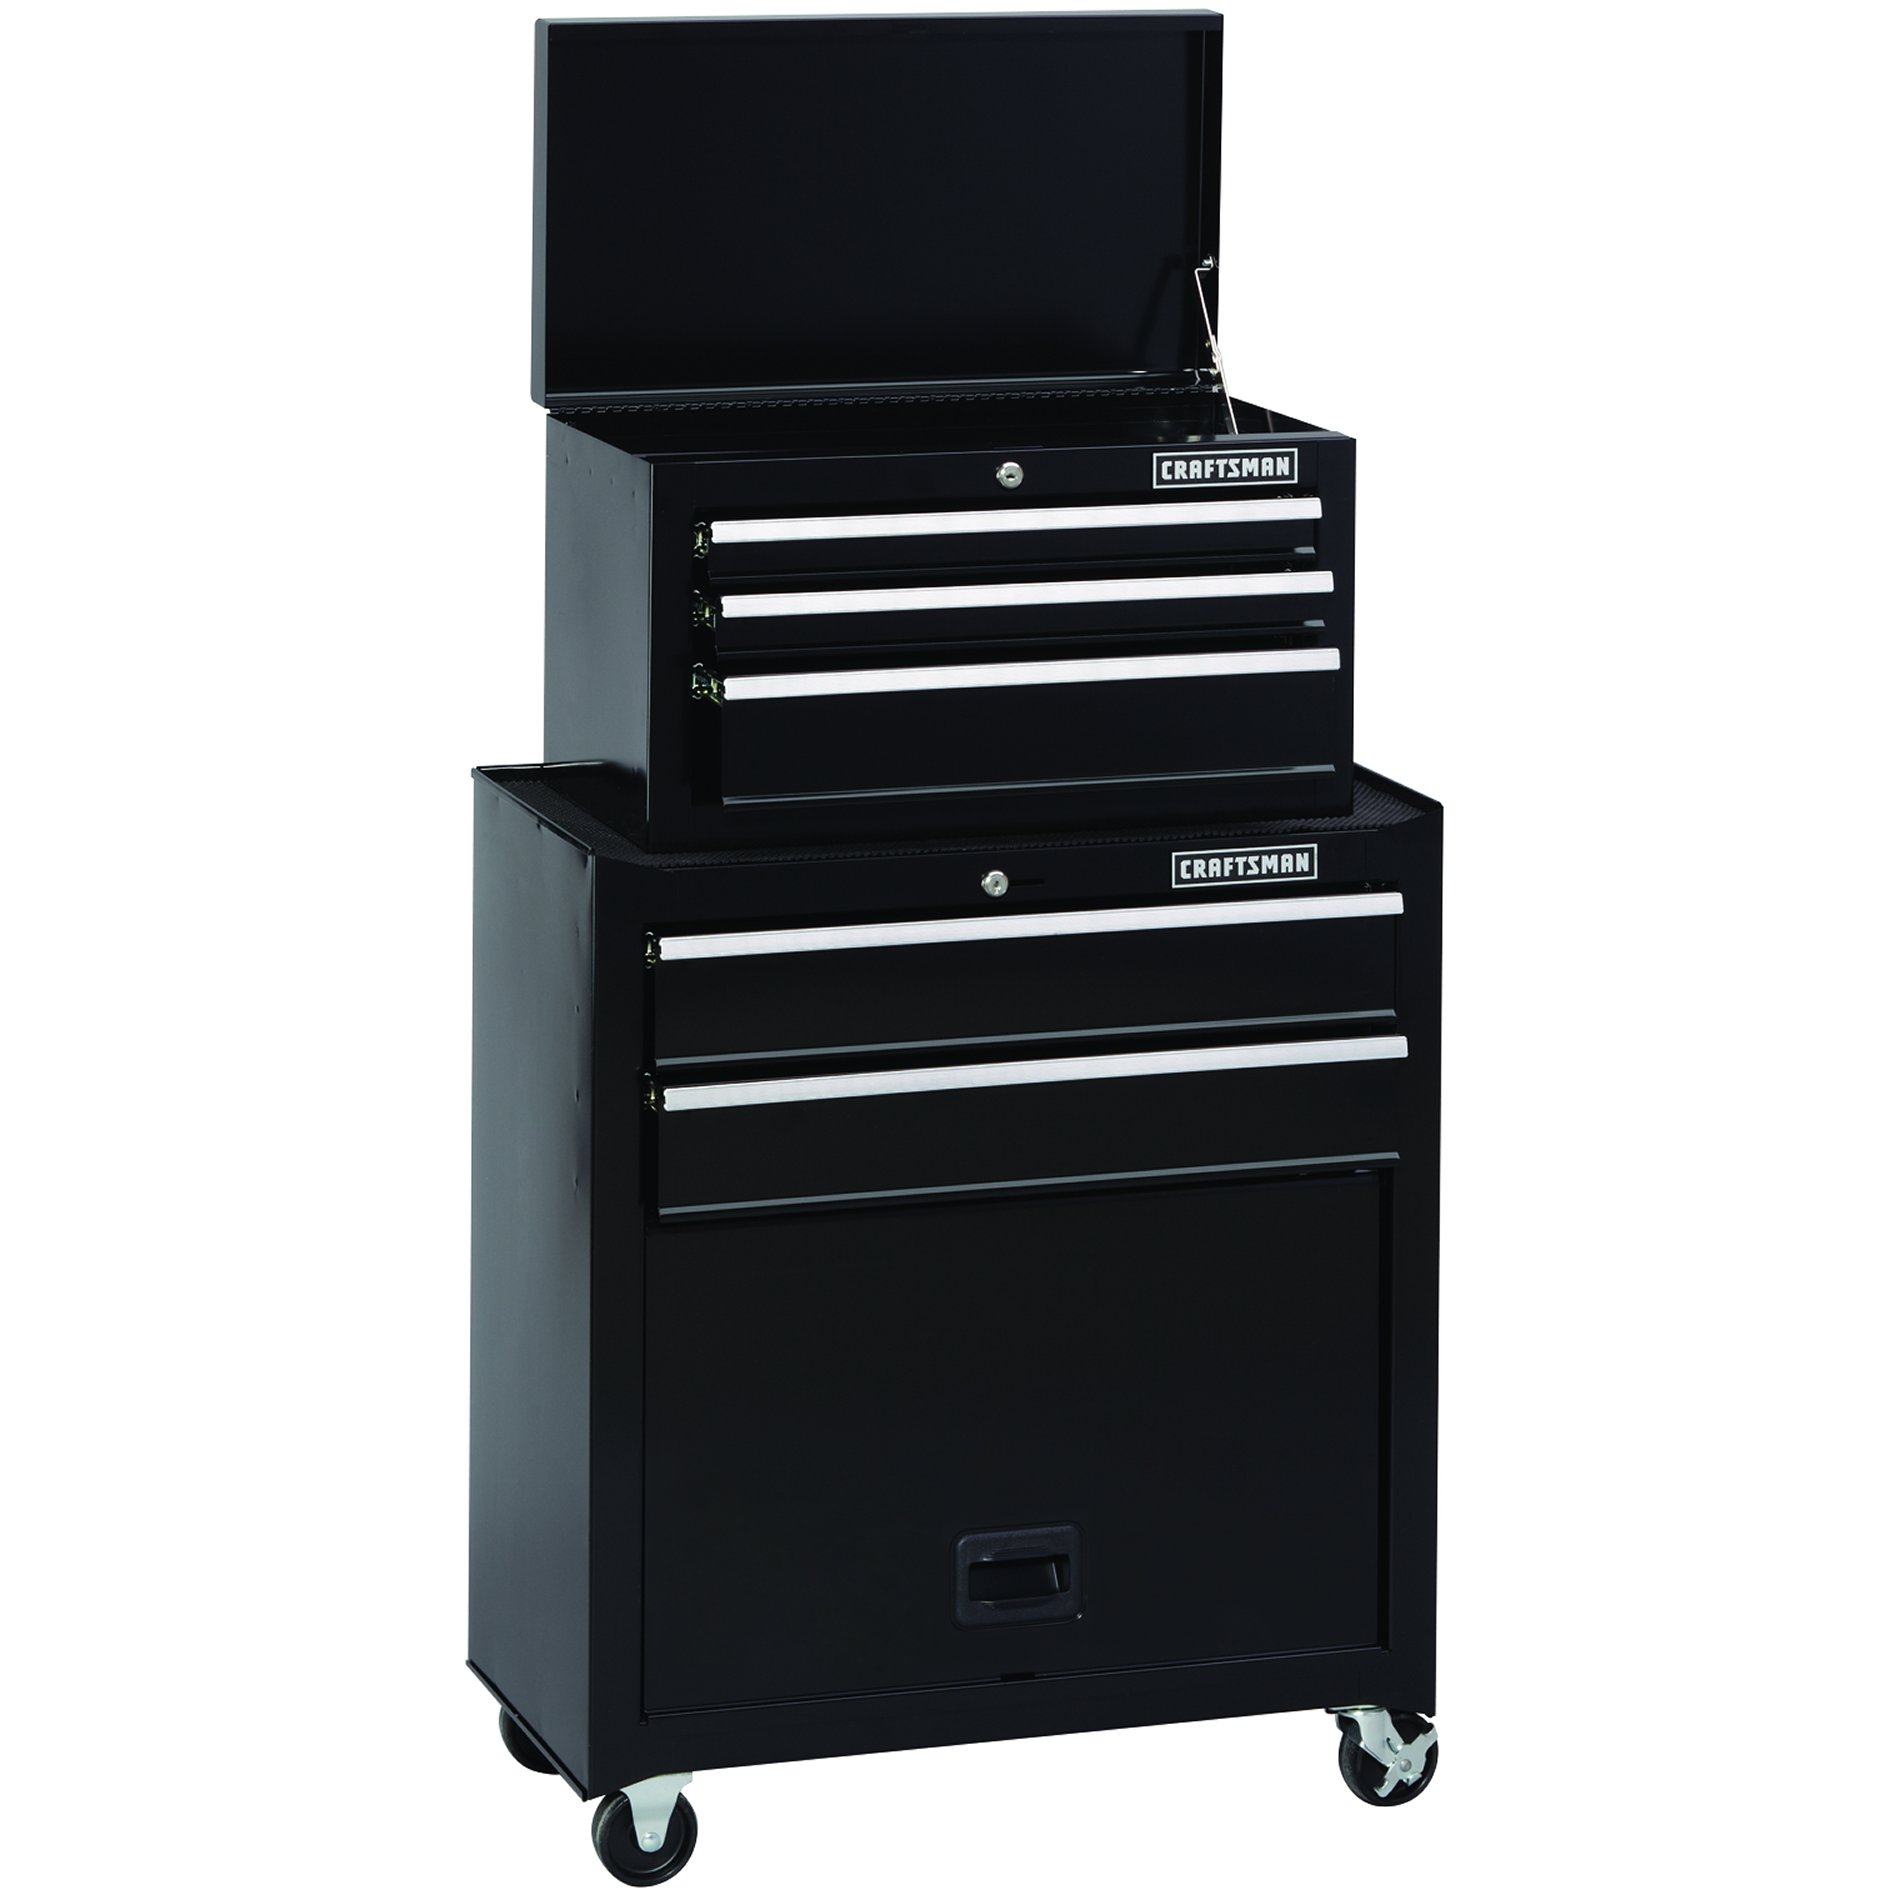 5-Drawer Basic Ball-Bearing Tool Center